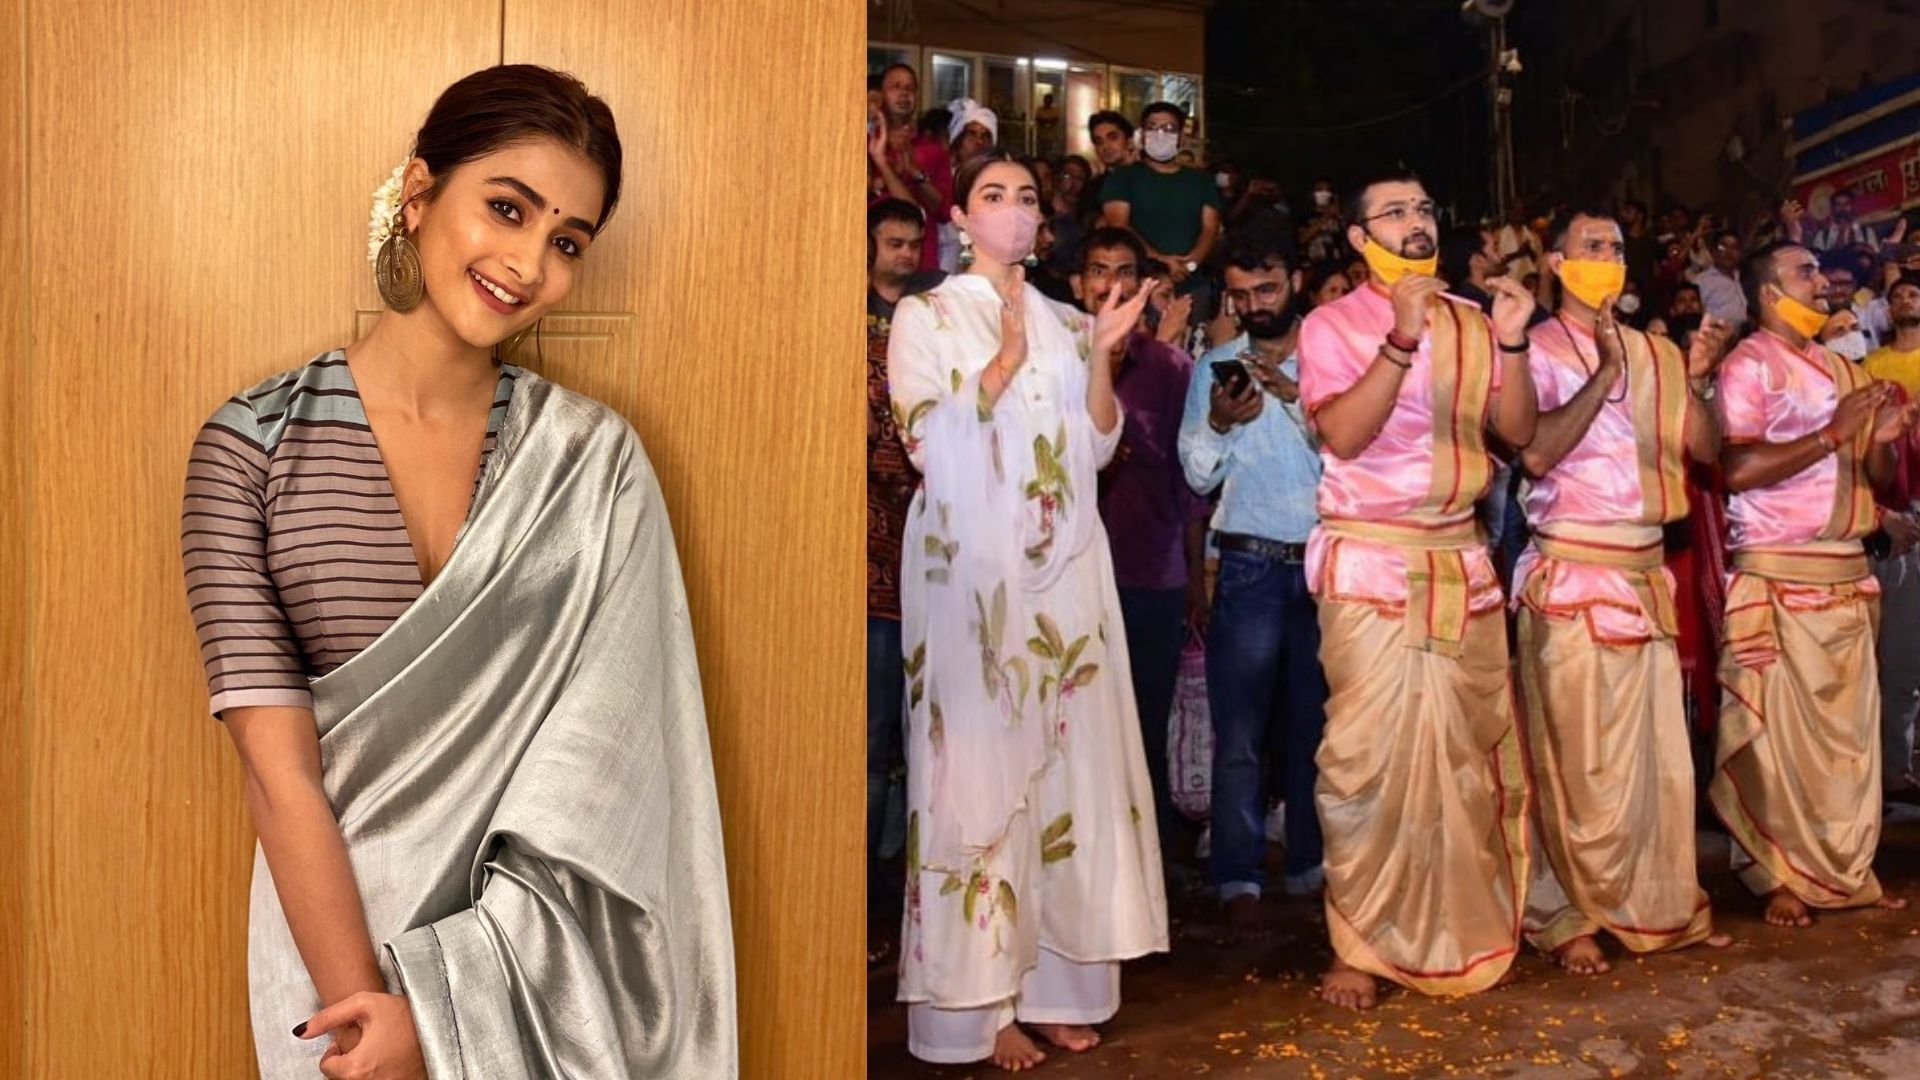 Pooja Hegde's Visit To Benaras For Ganga Aarti With Family Is Blissful For The Actress